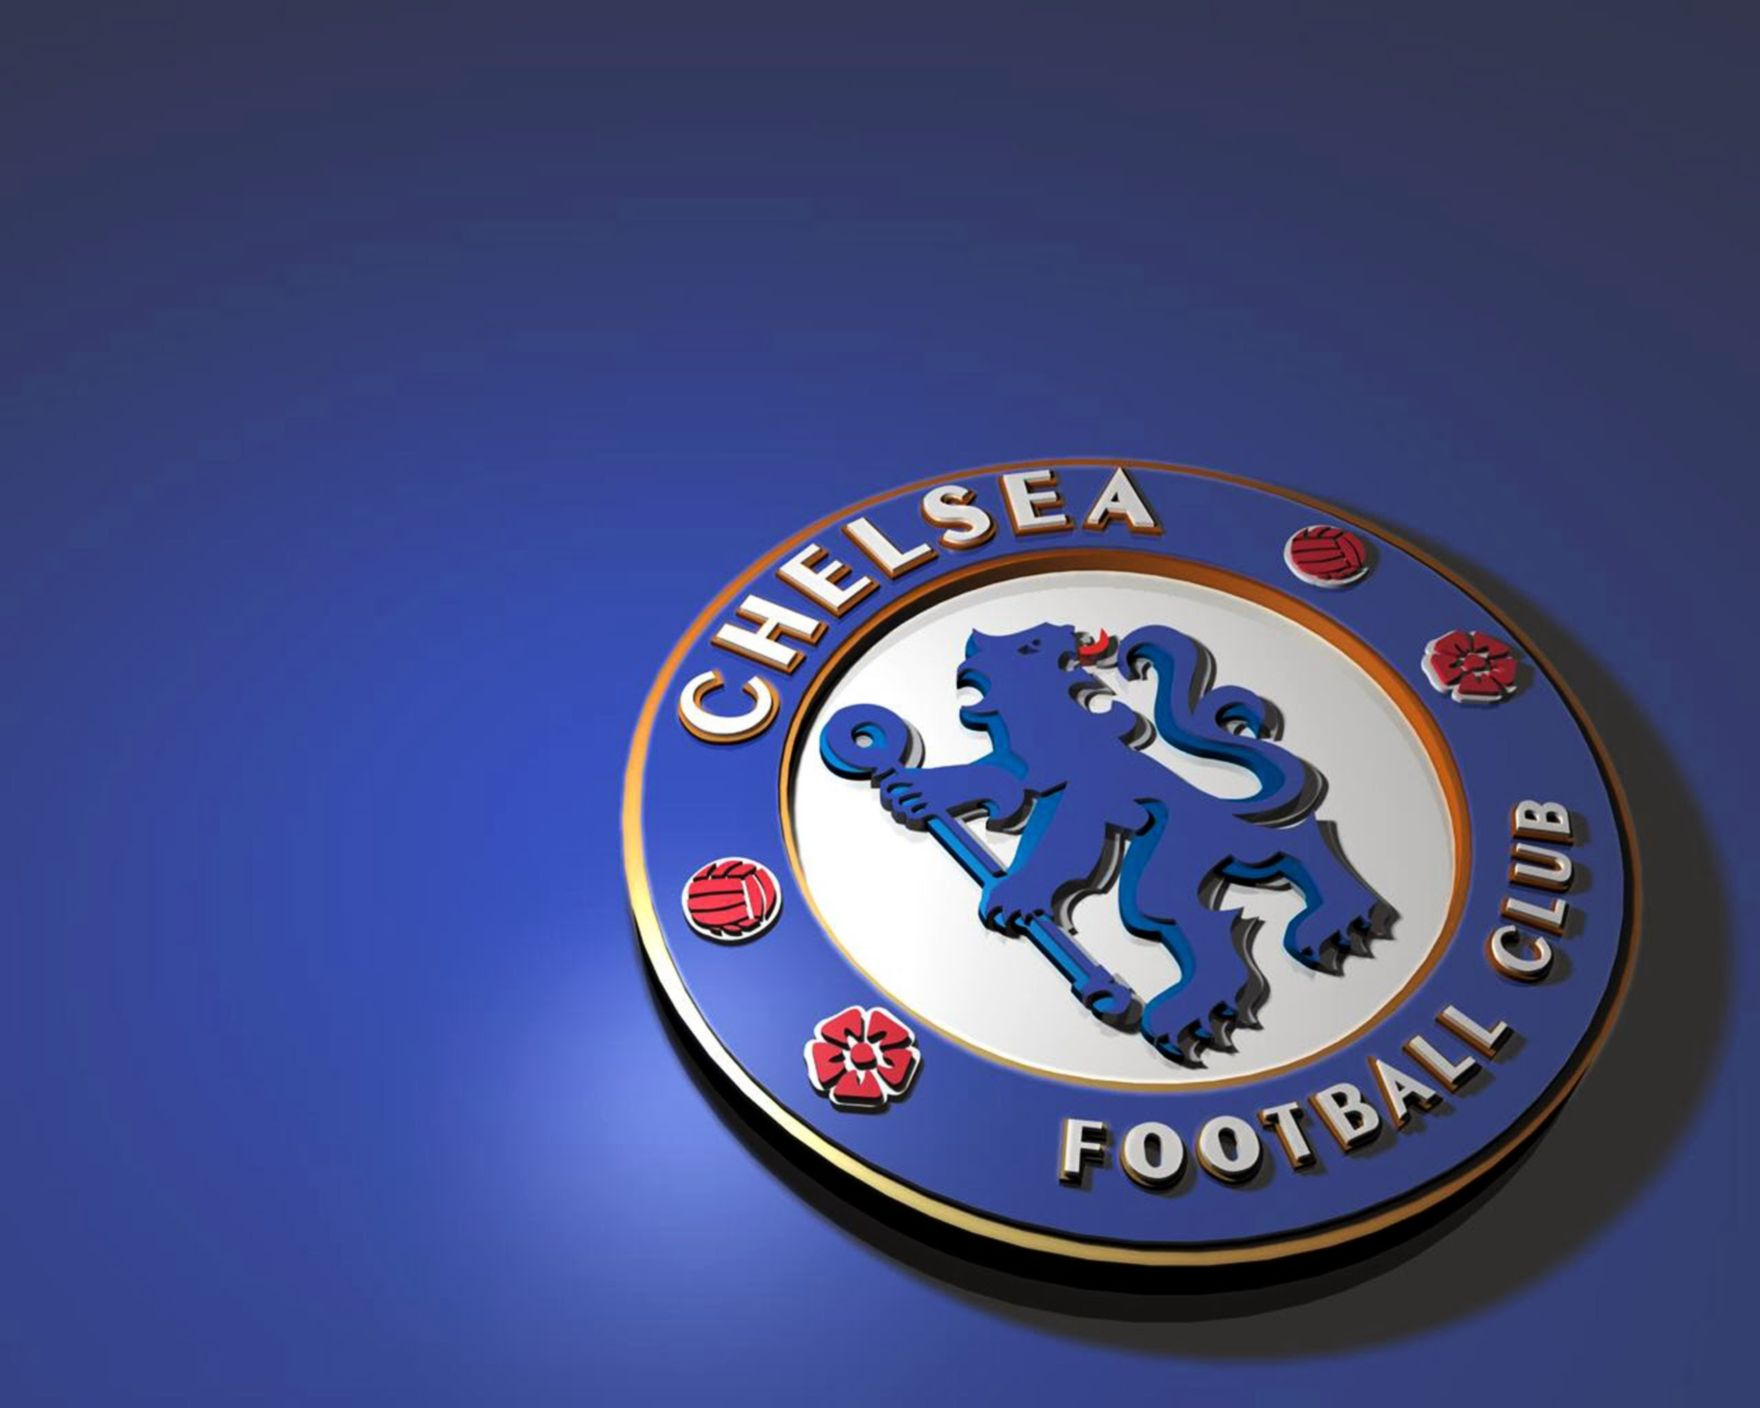 Download free HD Chelsea Logo 2015 Full HD Wallpaper, image